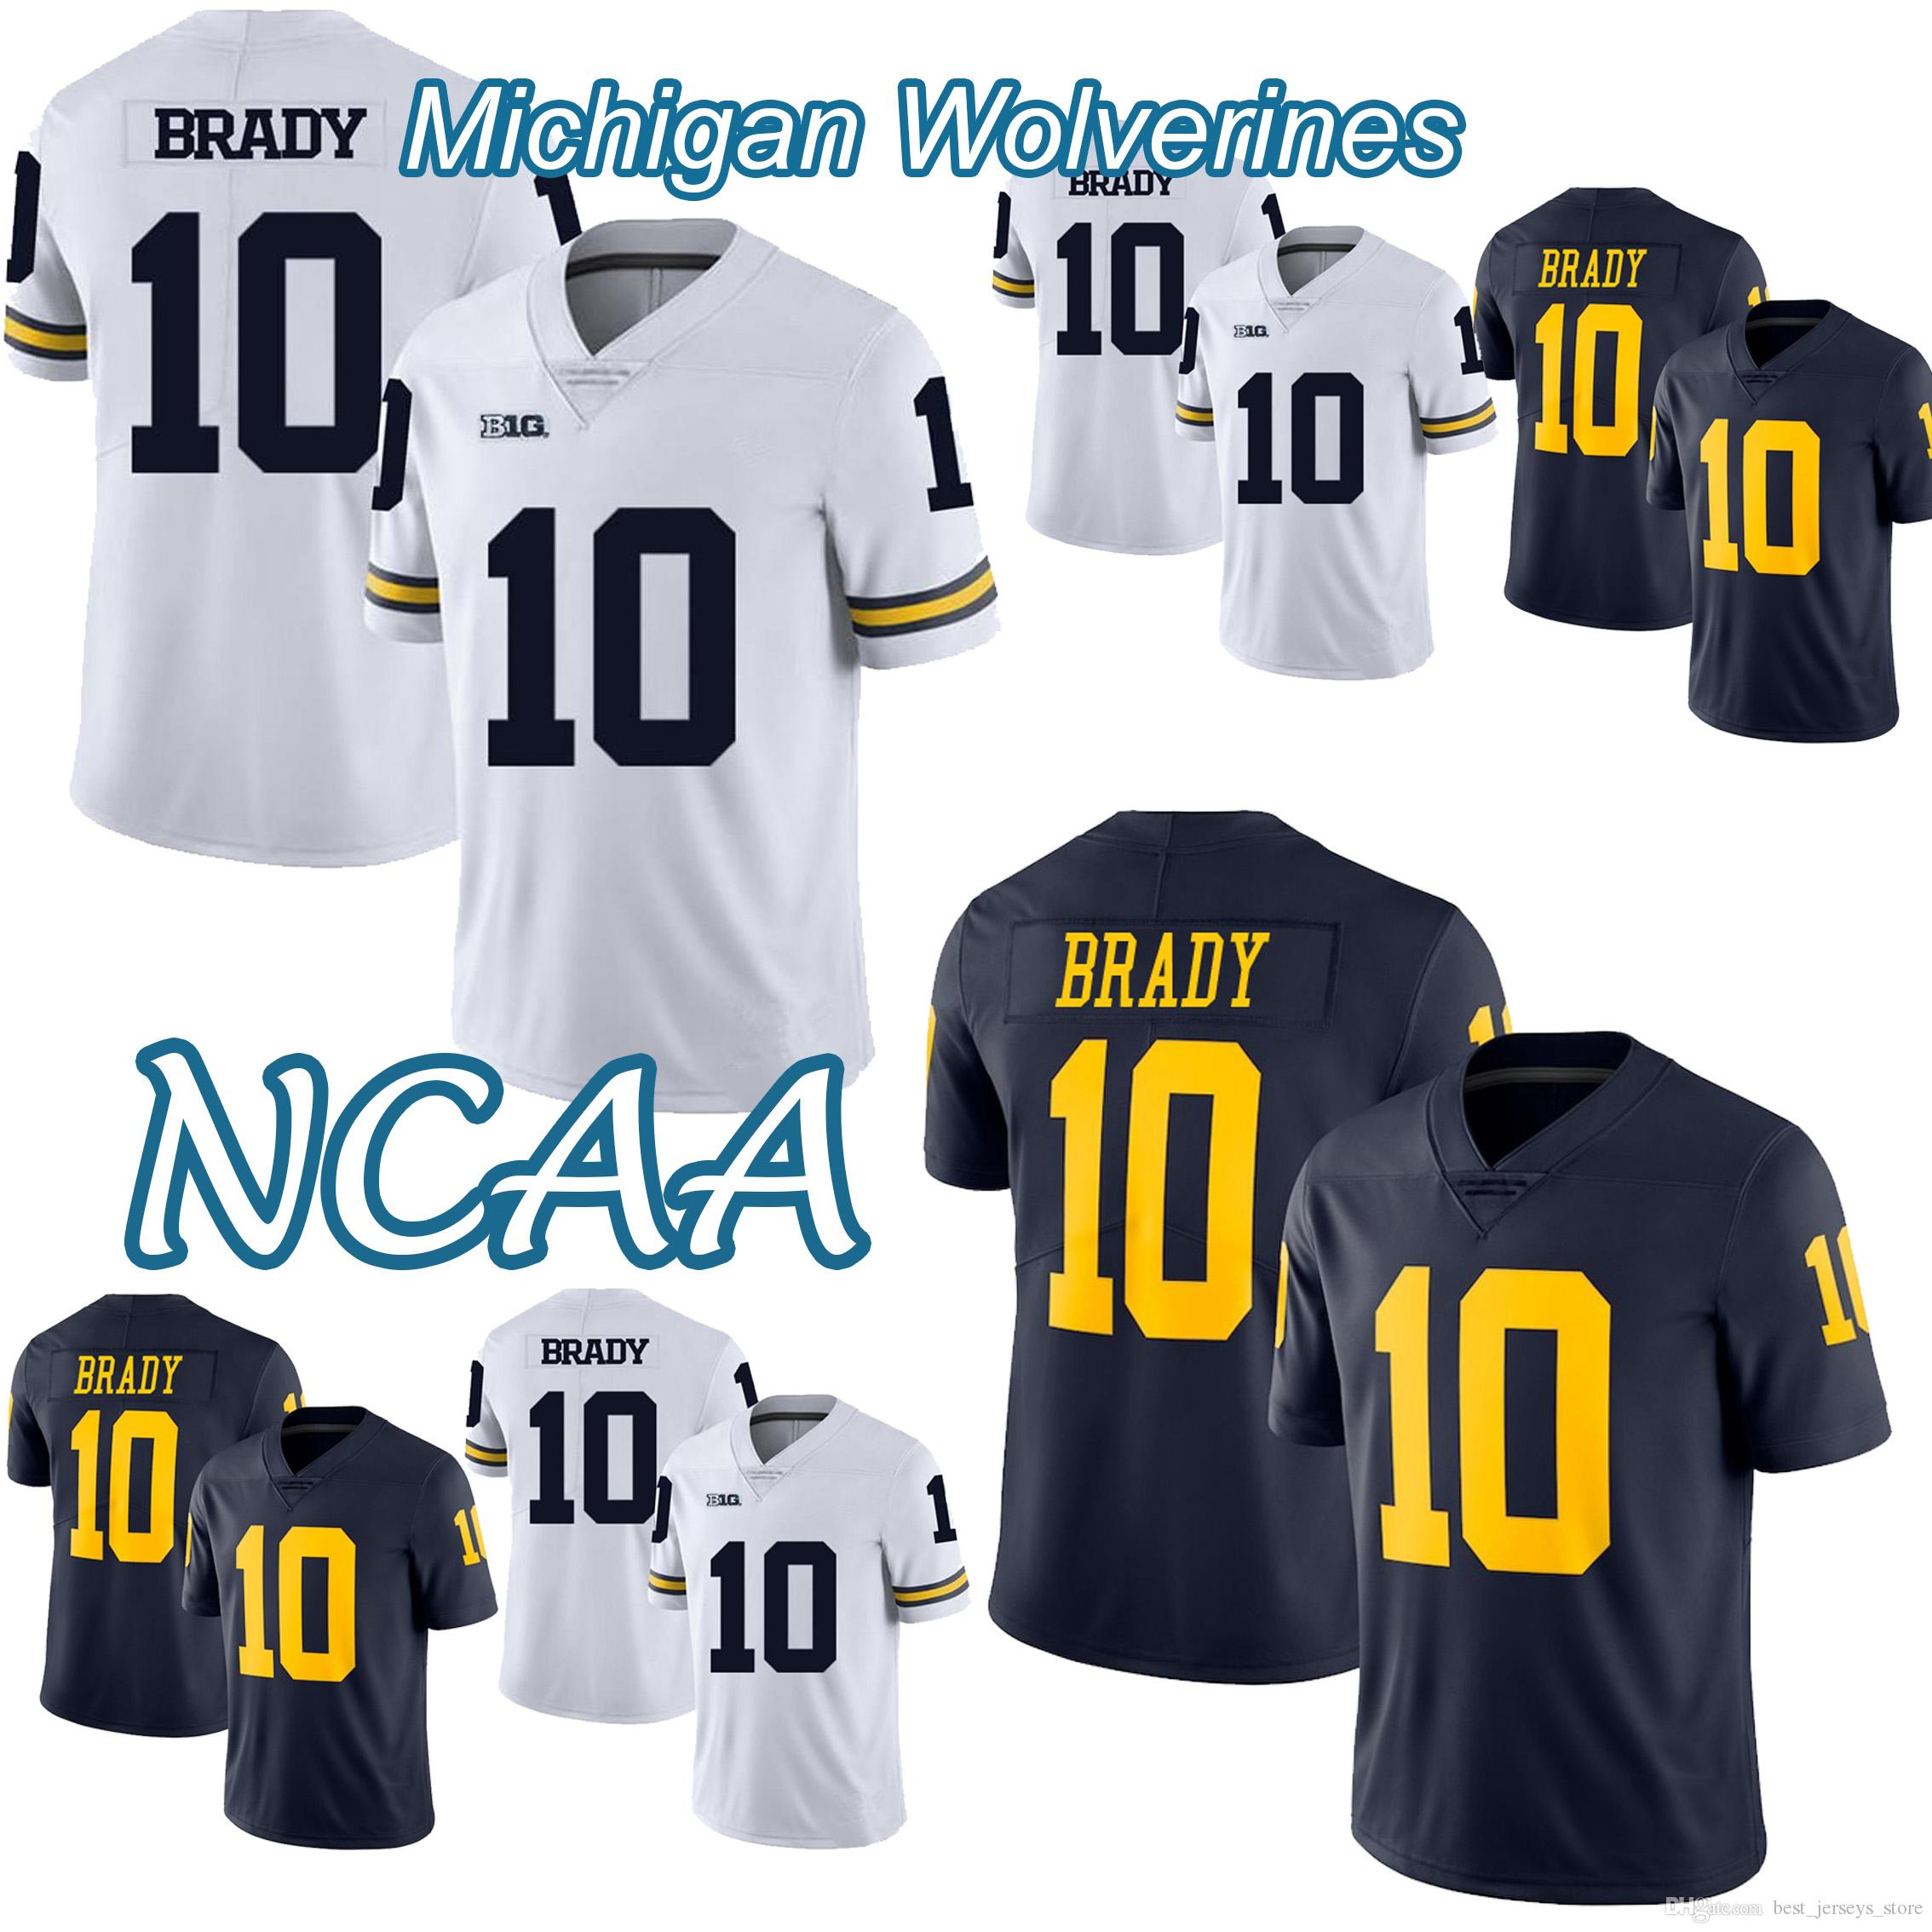 size 40 d87c1 29d34 NCAA Michigan Wolverines football jersey 10 Tom Brady Jersey Hot Sale 18 19  NEW top quality